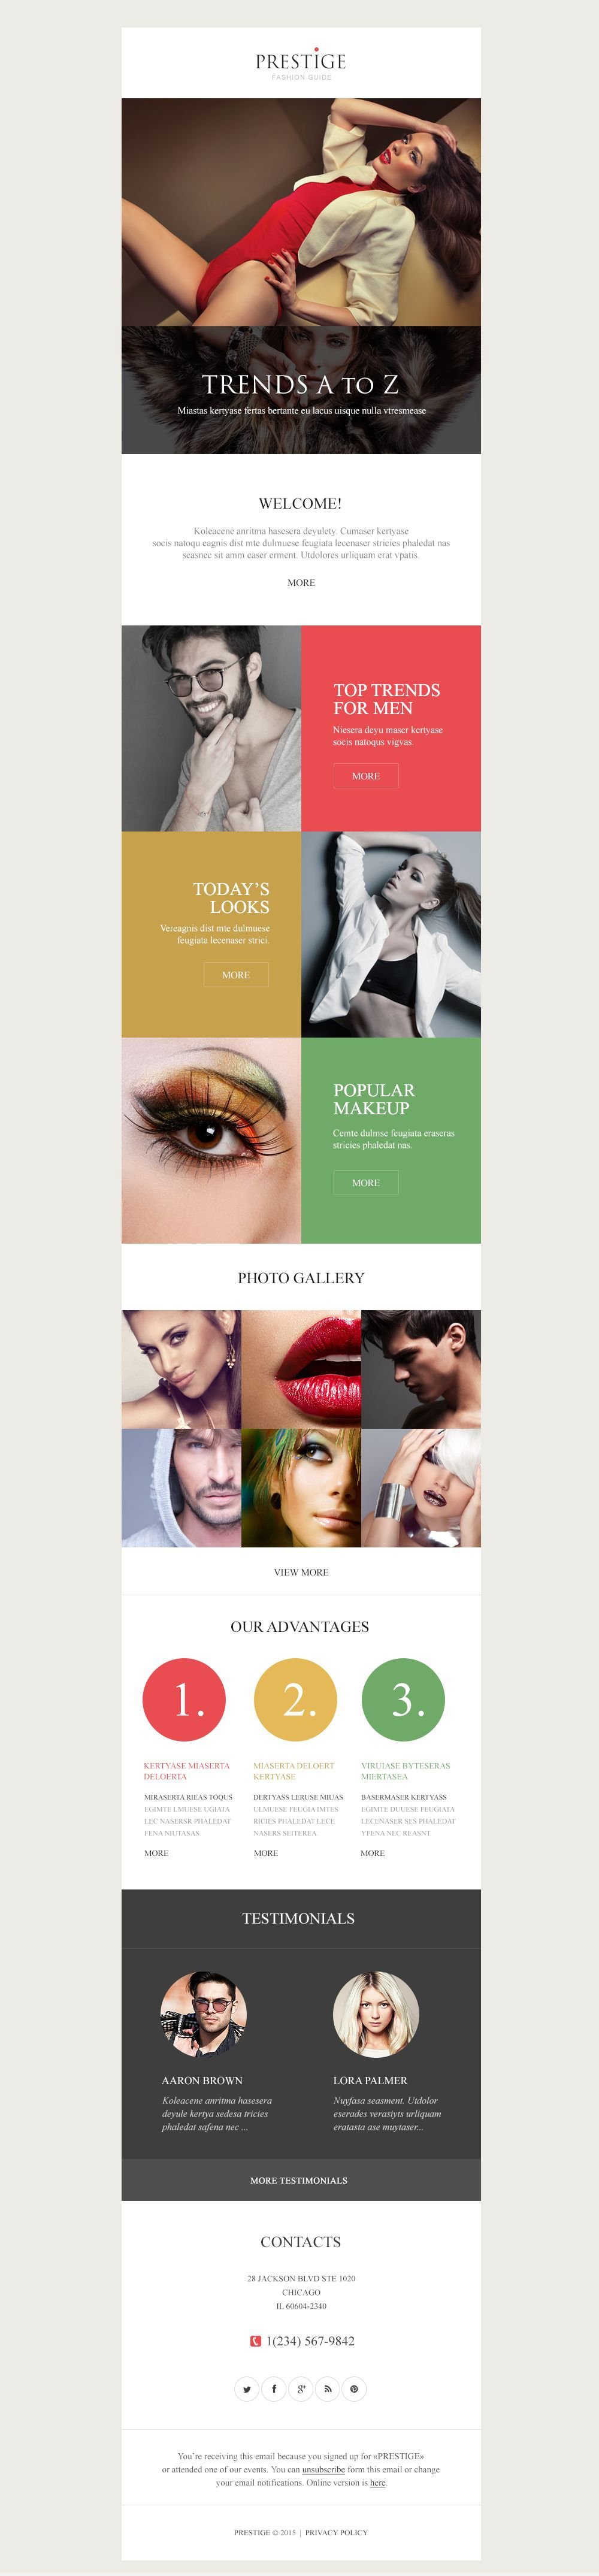 Fashion Responsive Newsletter Template #53293